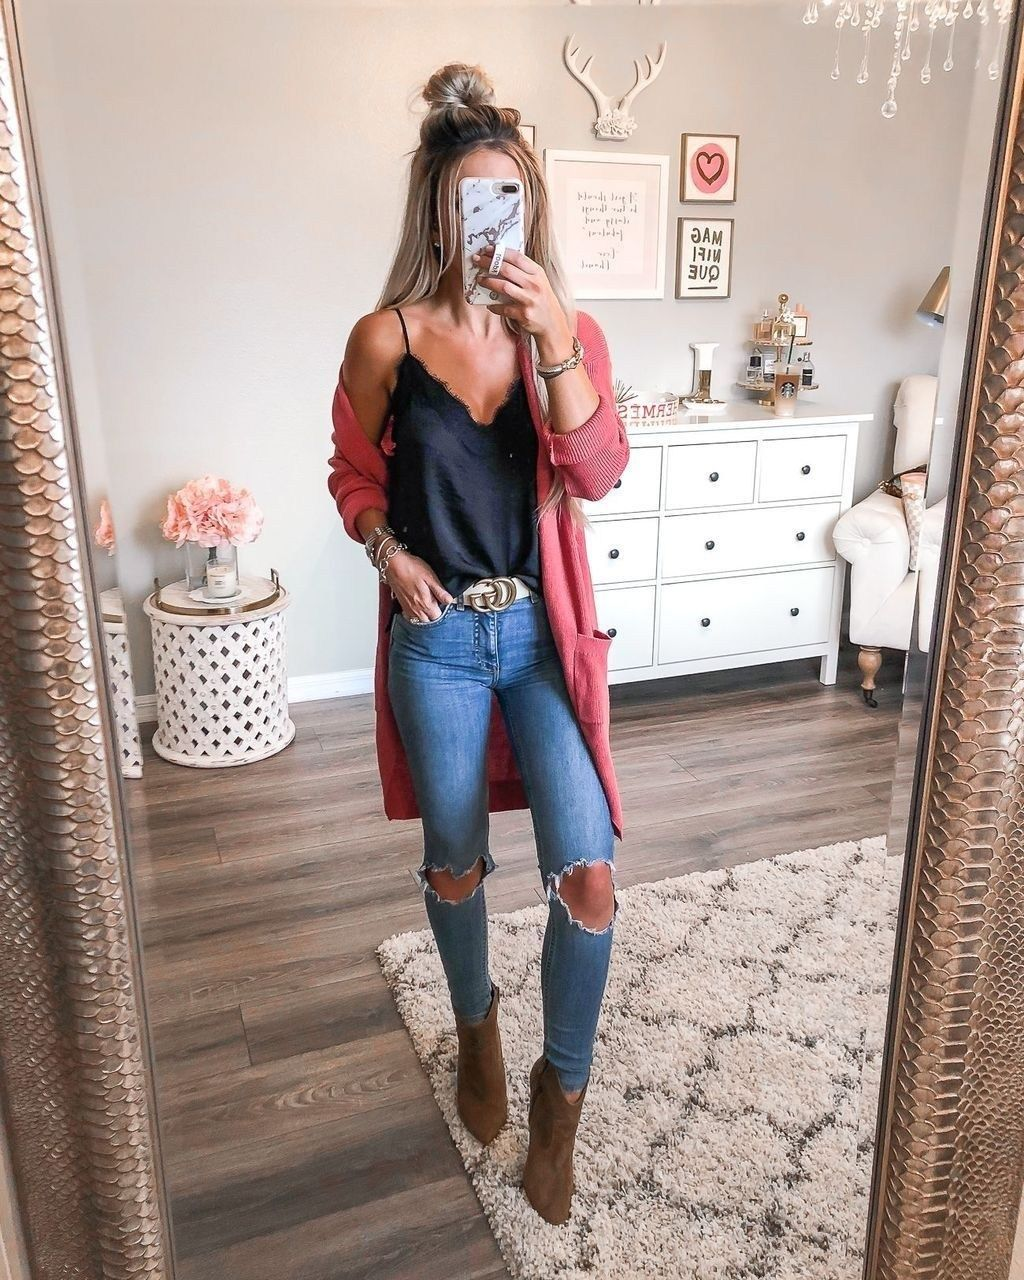 43 TRENDING SPRING WOMEN OUTFITS IDEAS 2019 - Wass Sell